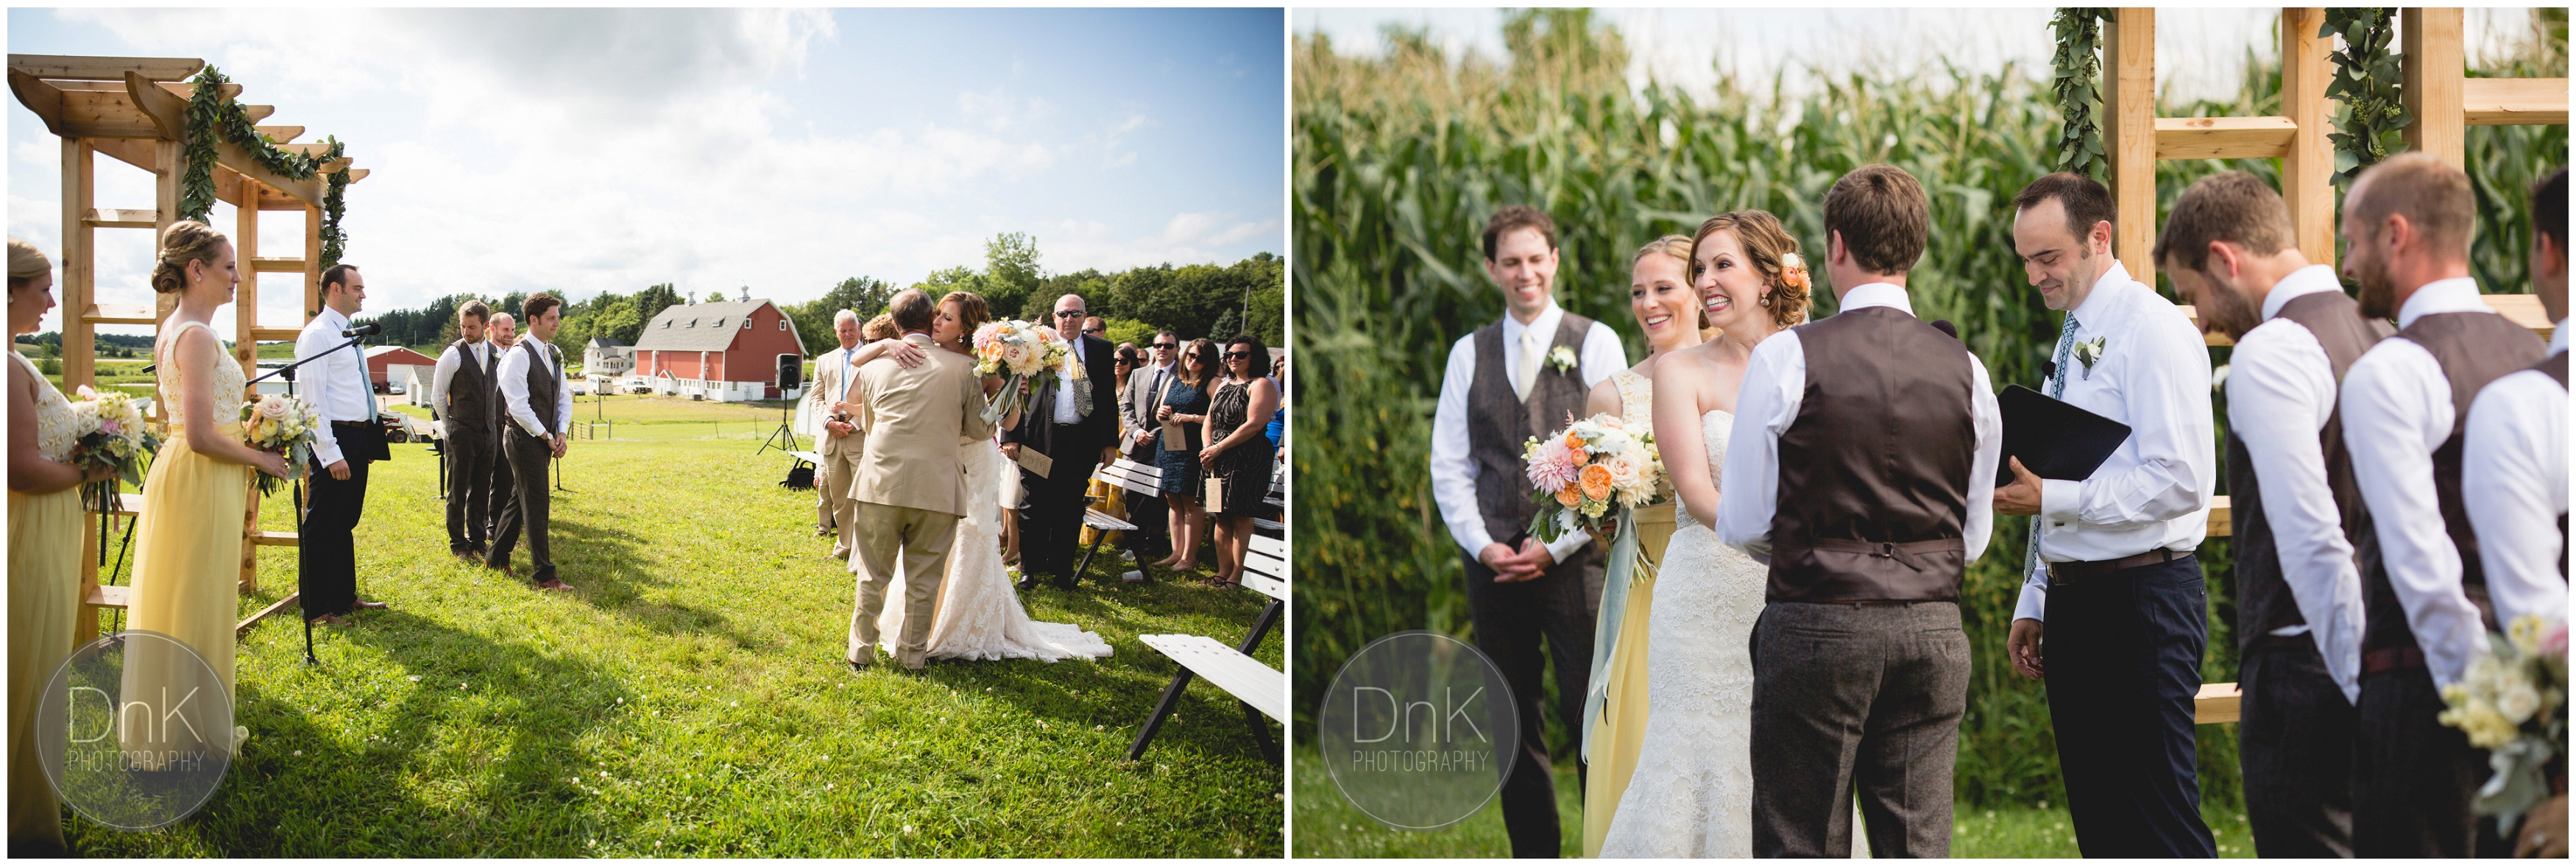 25 - Dellwood Barn Wedding Ceremony